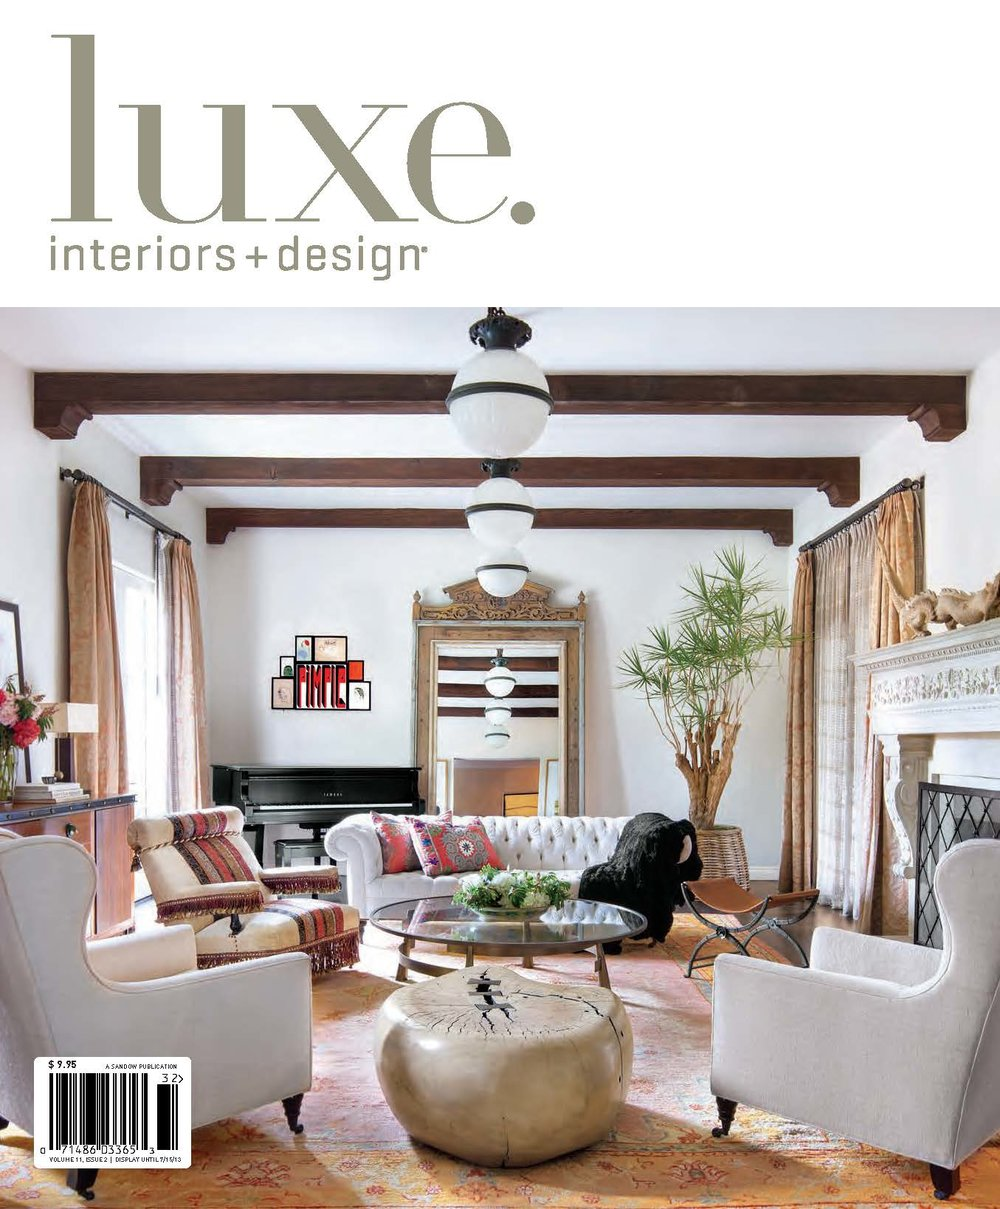 [Press] Luxe Interiors + Design  Spring 2013(1)_Page_1.jpg